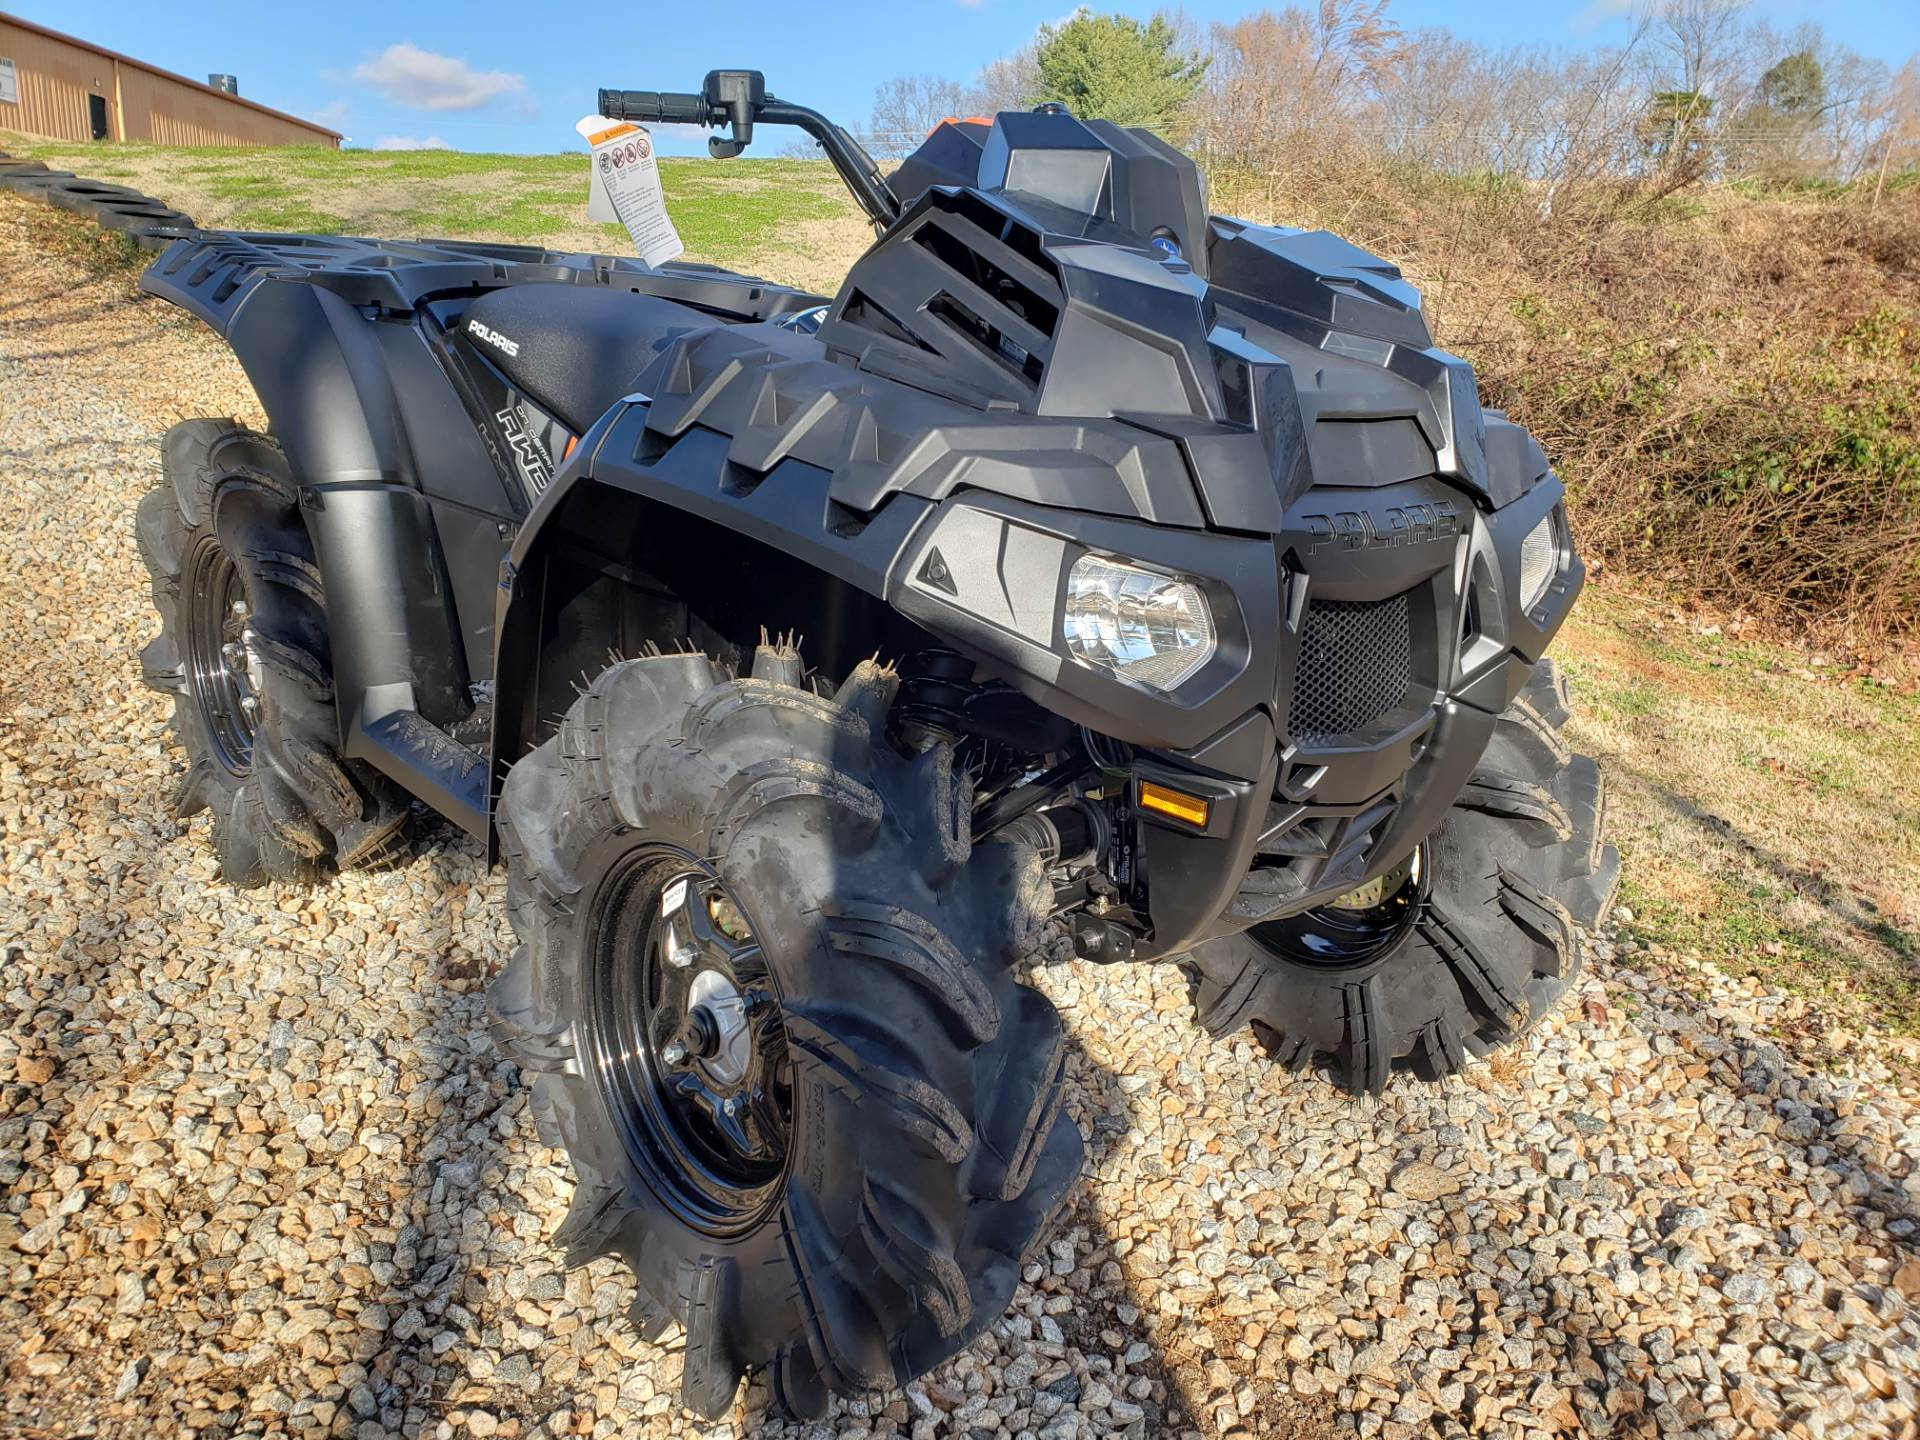 2019 Polaris Sportsman 850 High Lifter Edition for sale 7235